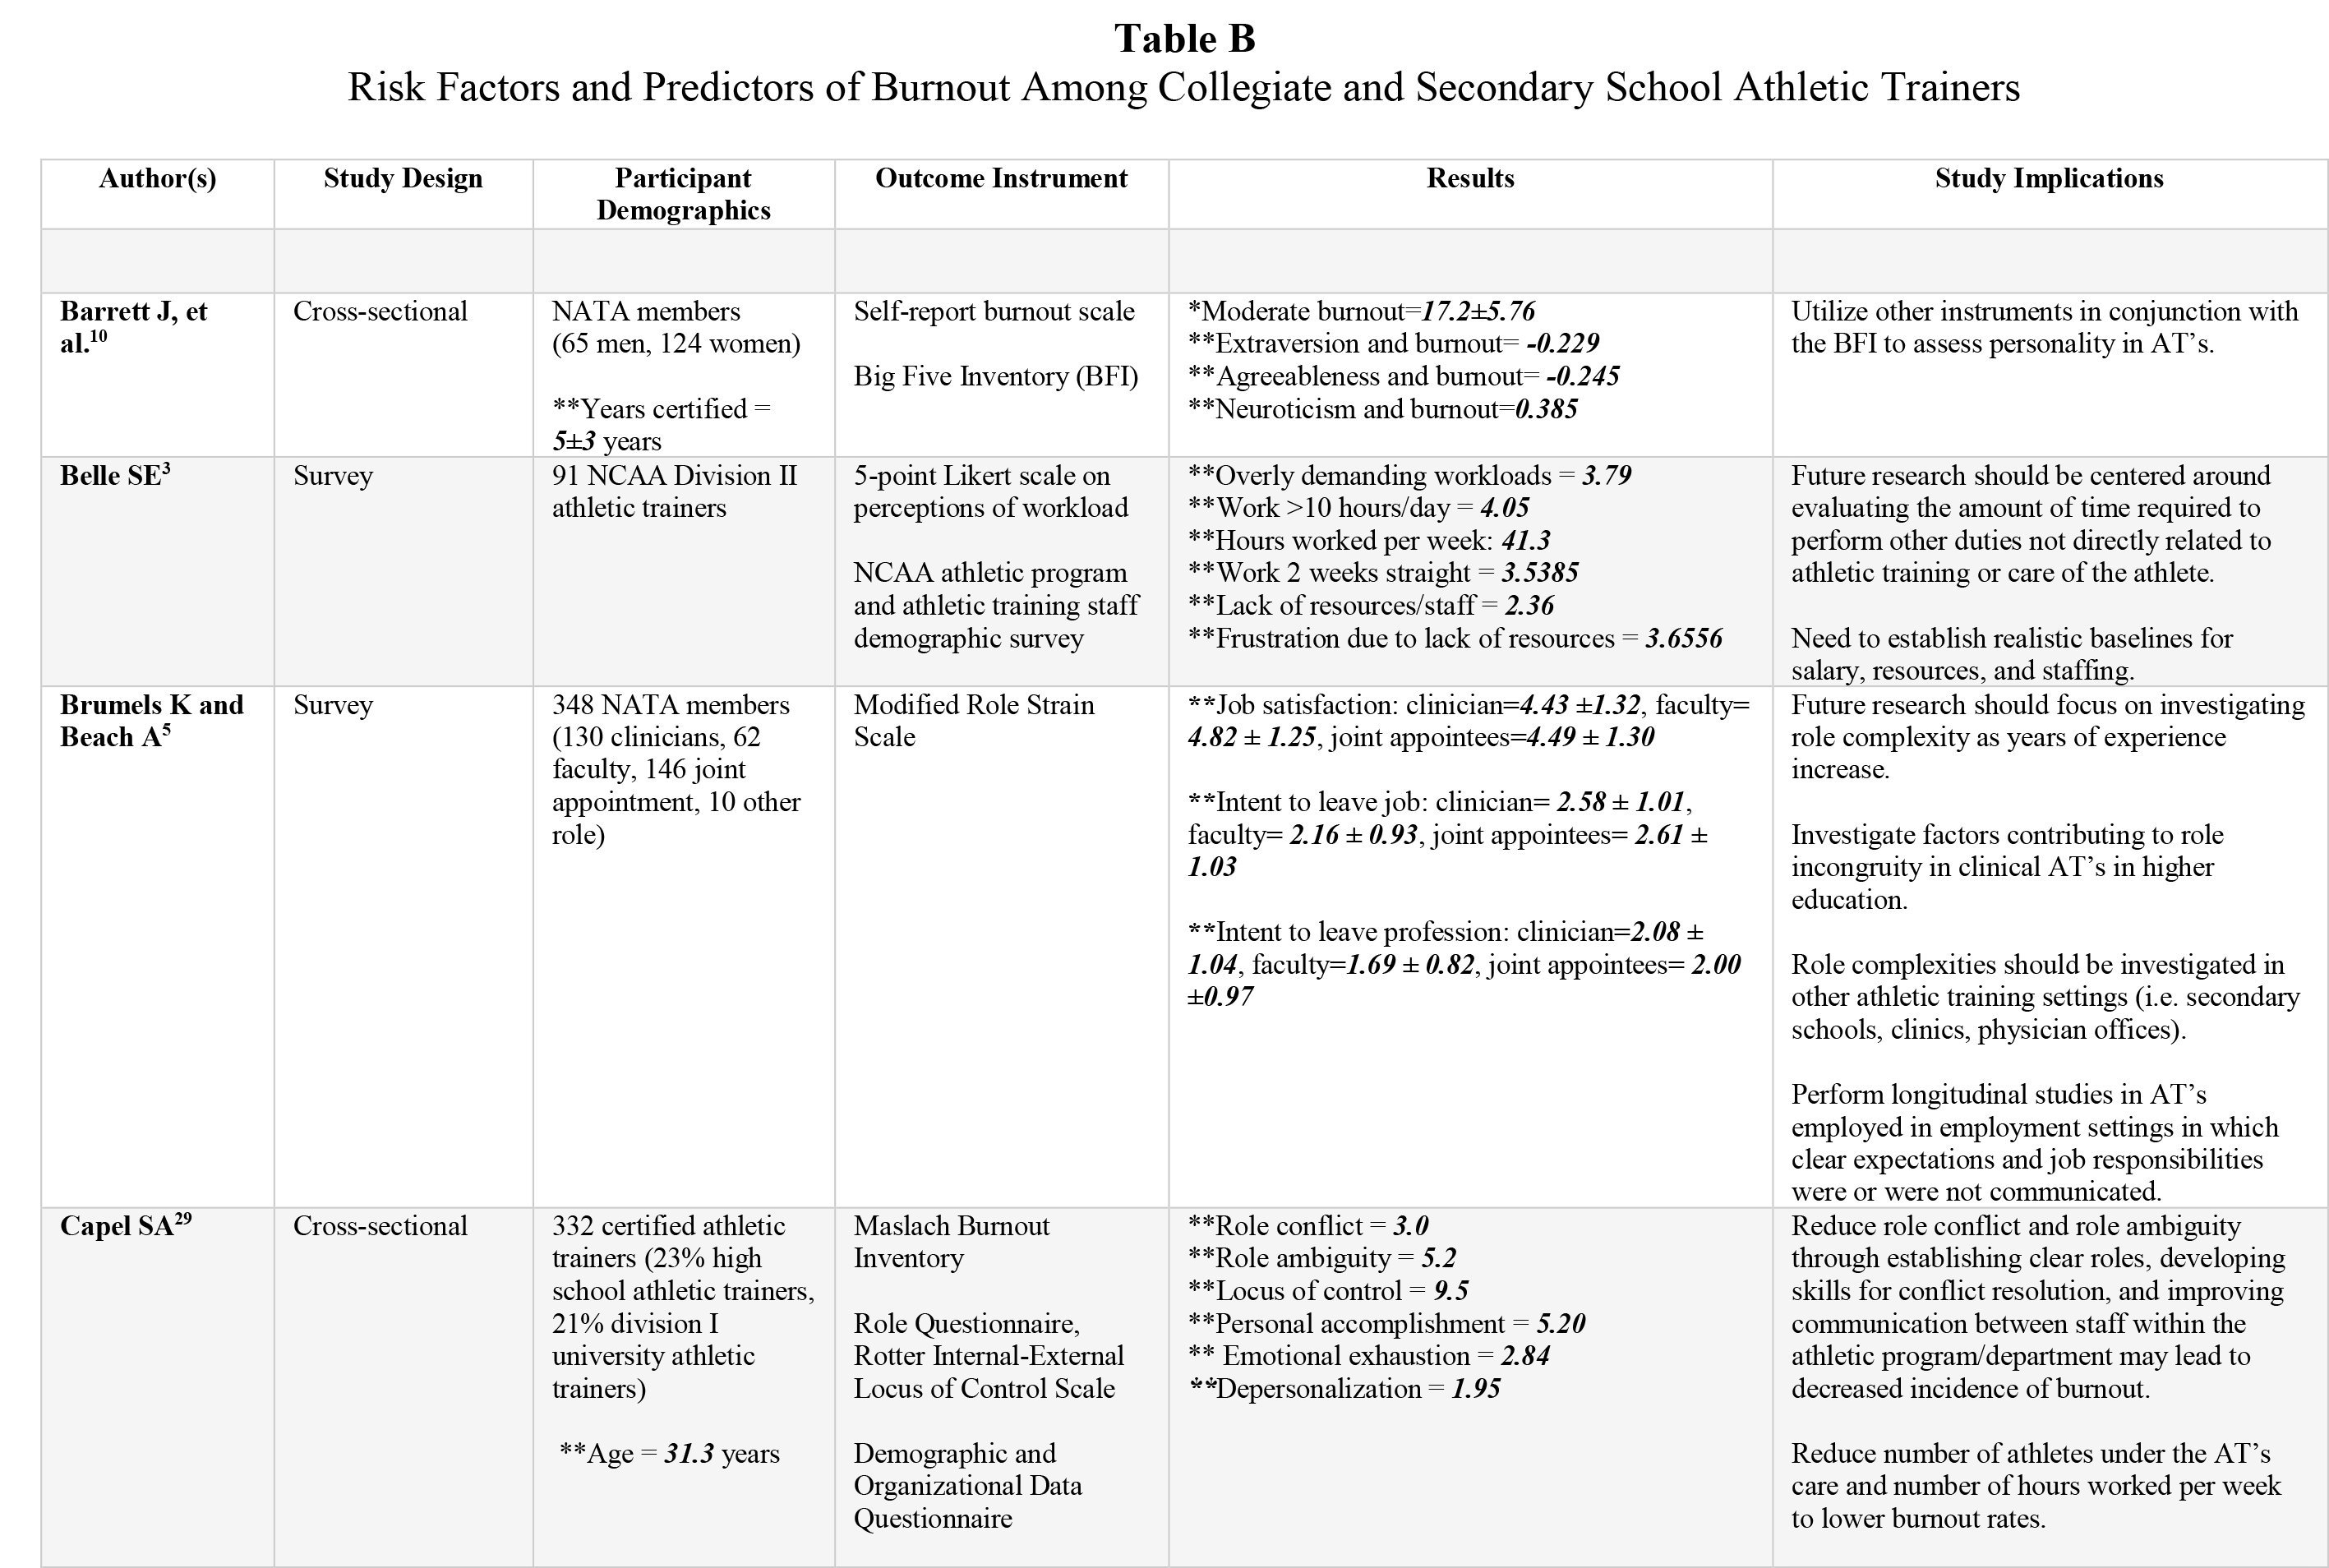 Risk Factors and Predictors of Burnout Among Collegiate and Secondary School Athletic Trainers